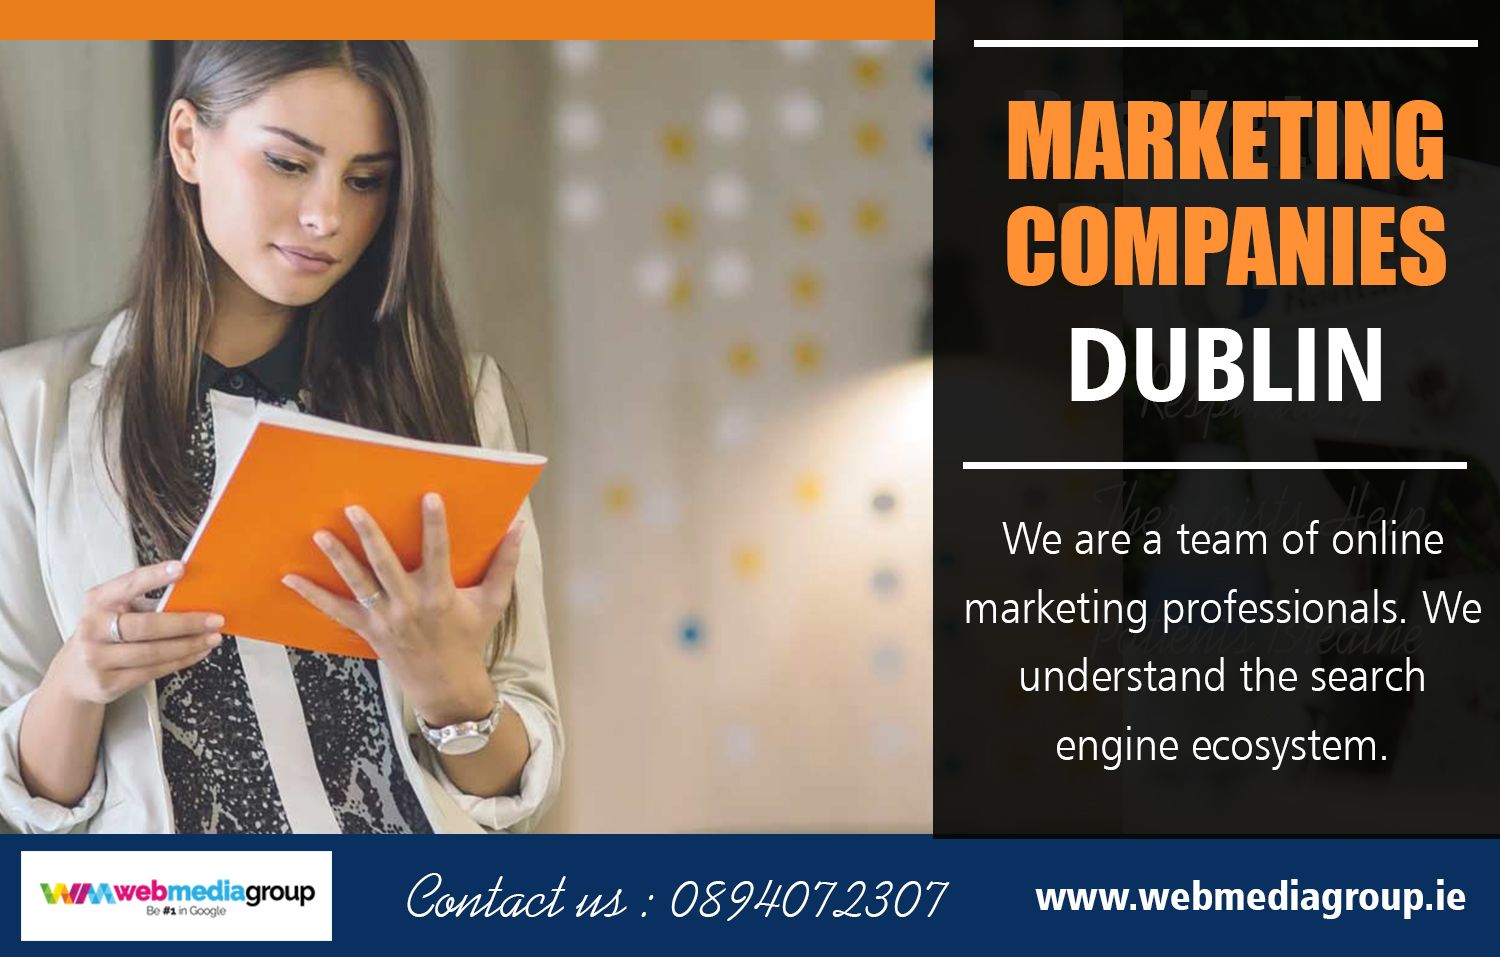 Pin By Digital Agency Dublin On Digital Marketing Dublin Digital Marketing Marketing Professional Marketing